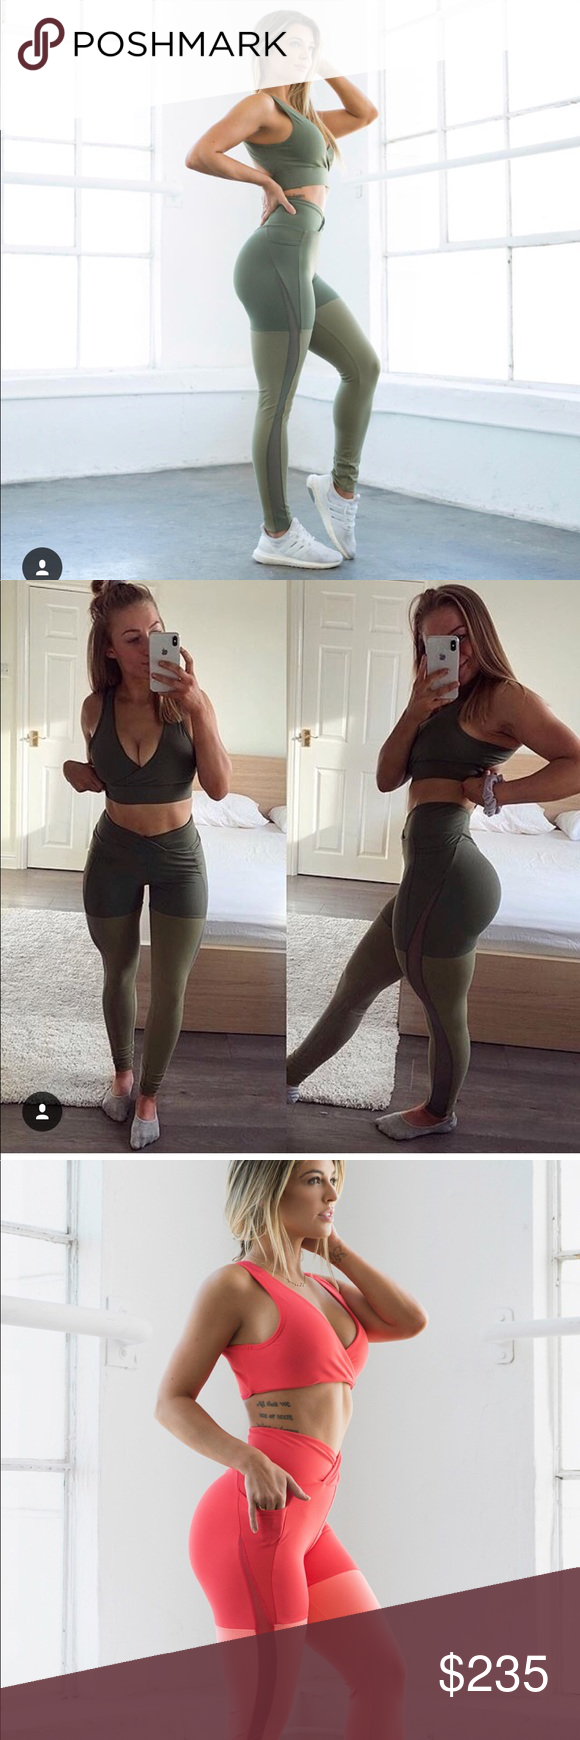 642a5da294d68 Gymshark x Nikki Blackketter Season 2 Leggings Coral, Army Green, and  Pineapple print leggings Only wore each of them once High wasted, two tones  leggings ...